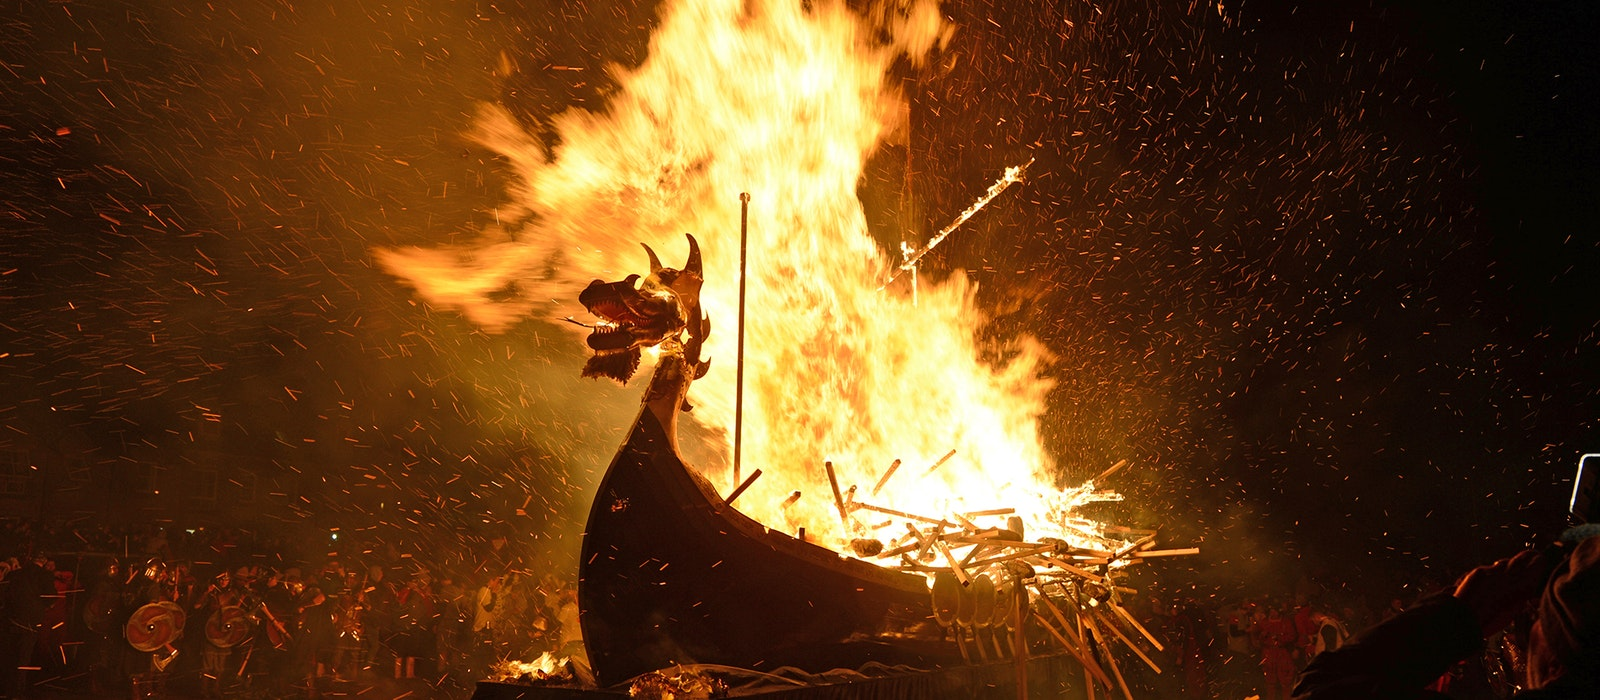 The festival rituals are rooted in Norse Yuletide traditions.